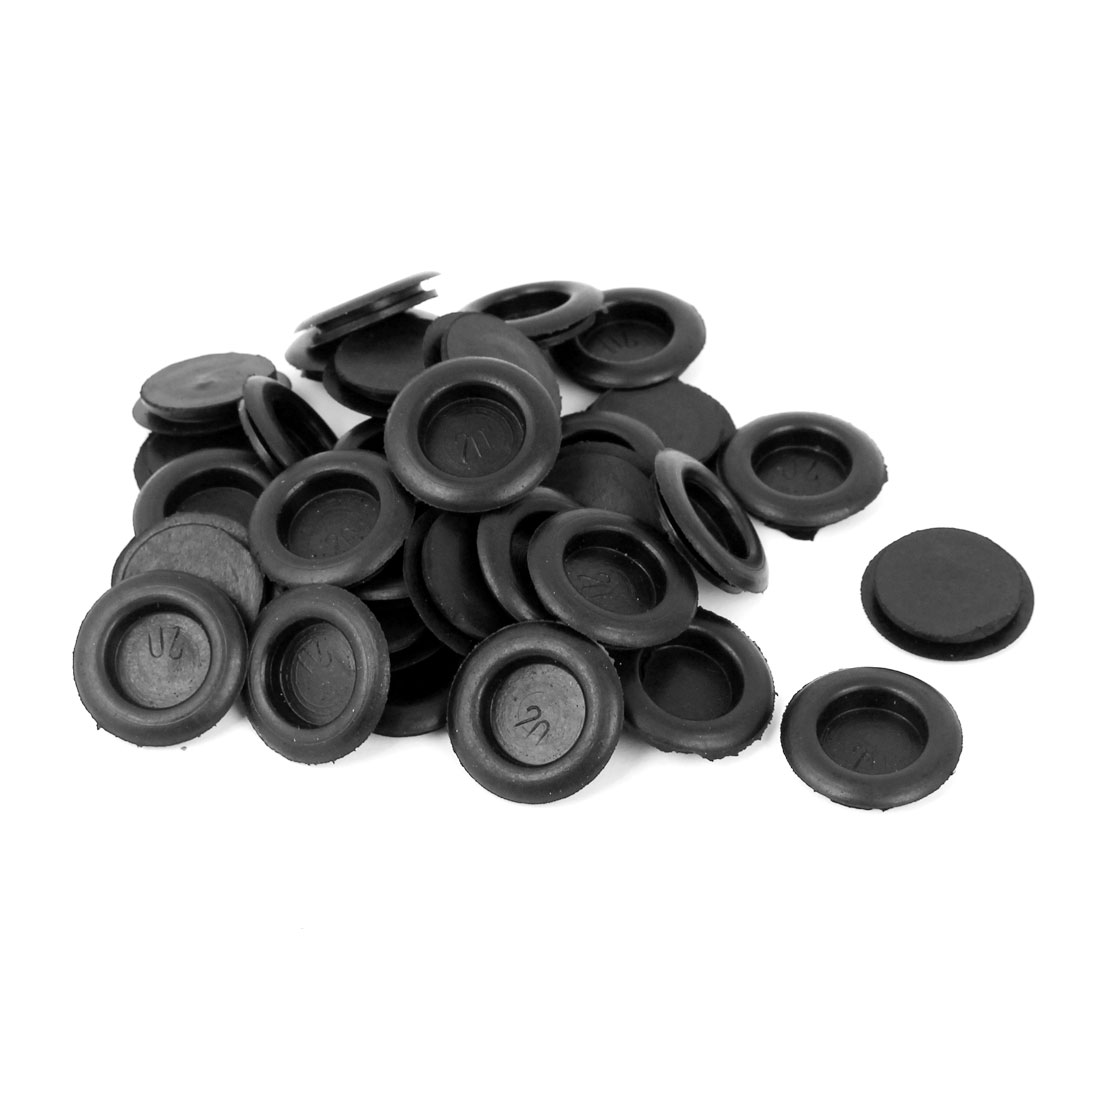 36 Pcs Running Wire Cable Protector Armature Rubber Needle Bar Grommets Black 20mm